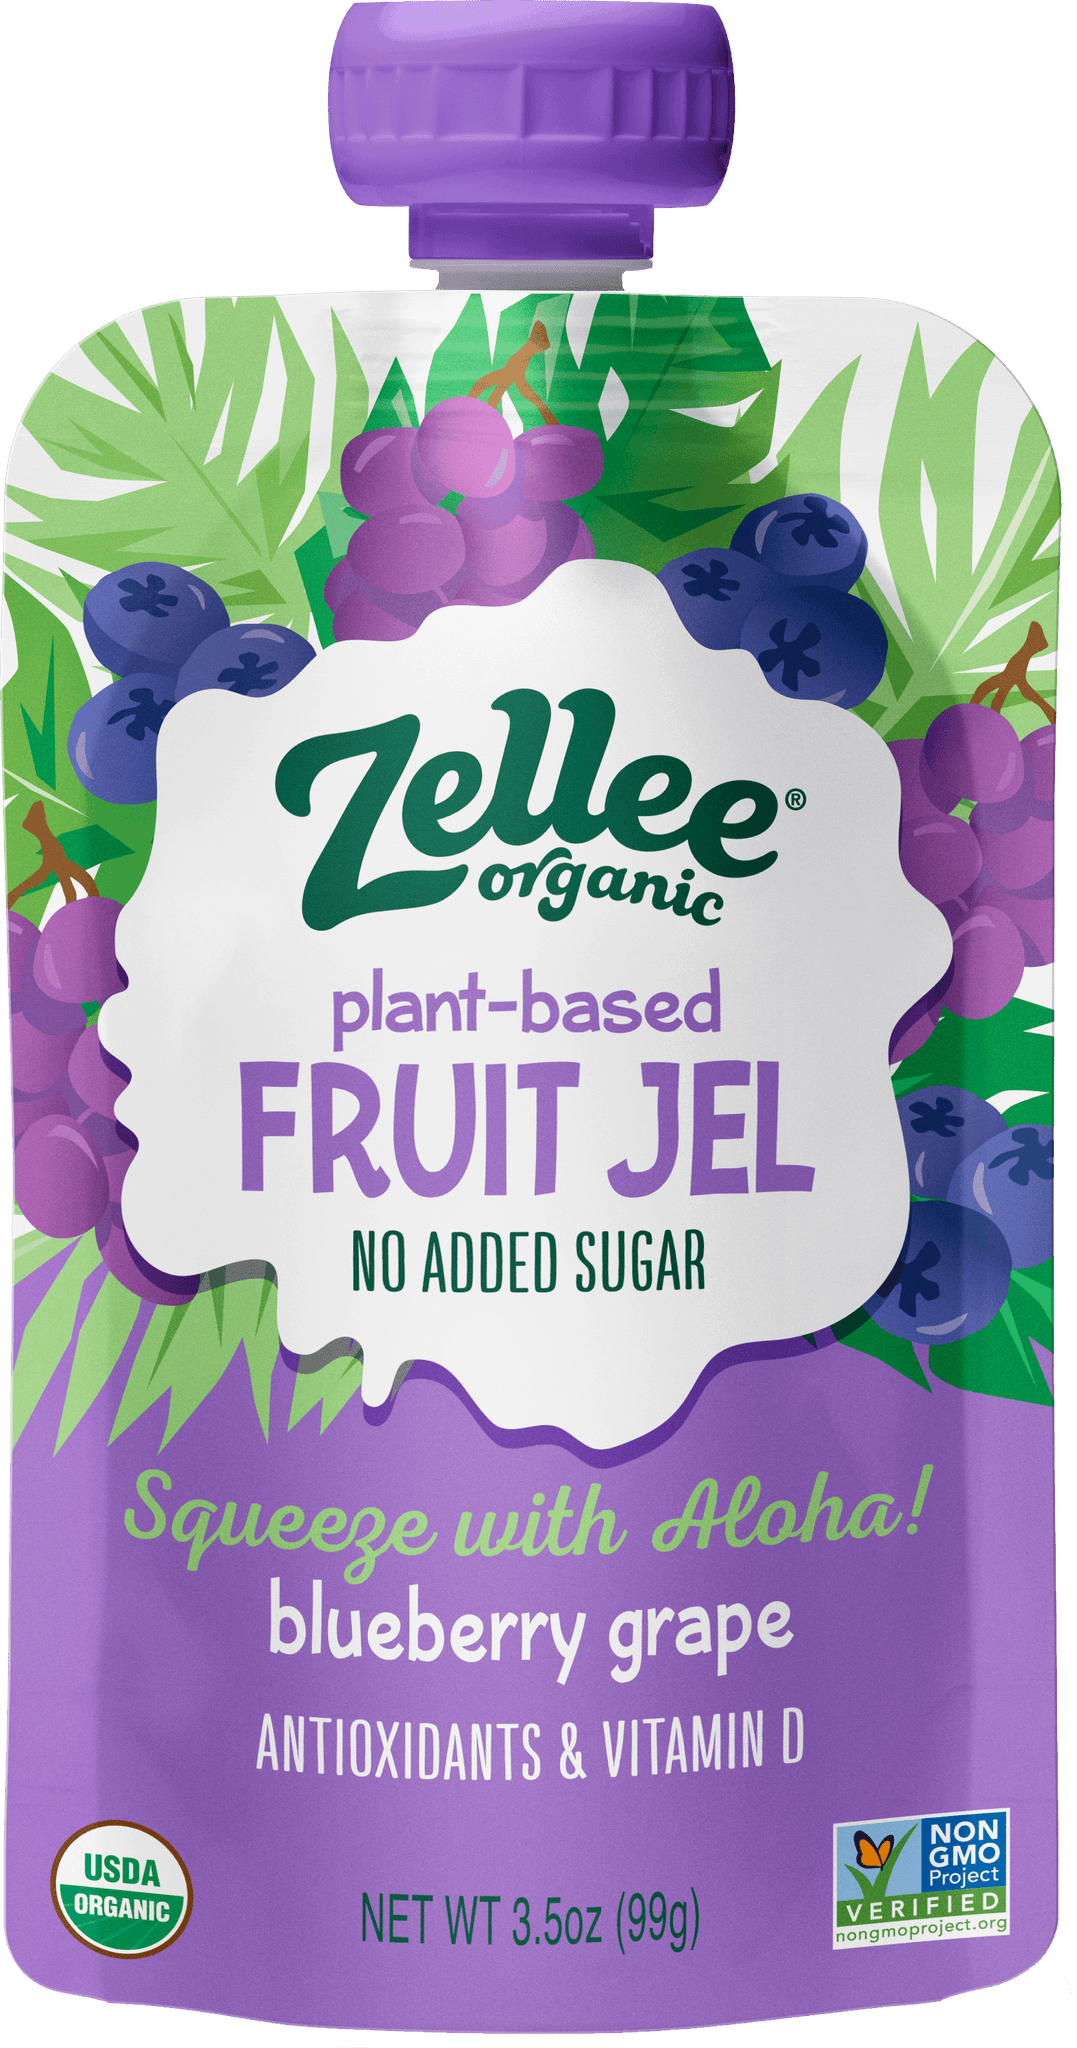 Zellee Organic Blueberry Grape Fruit Jel